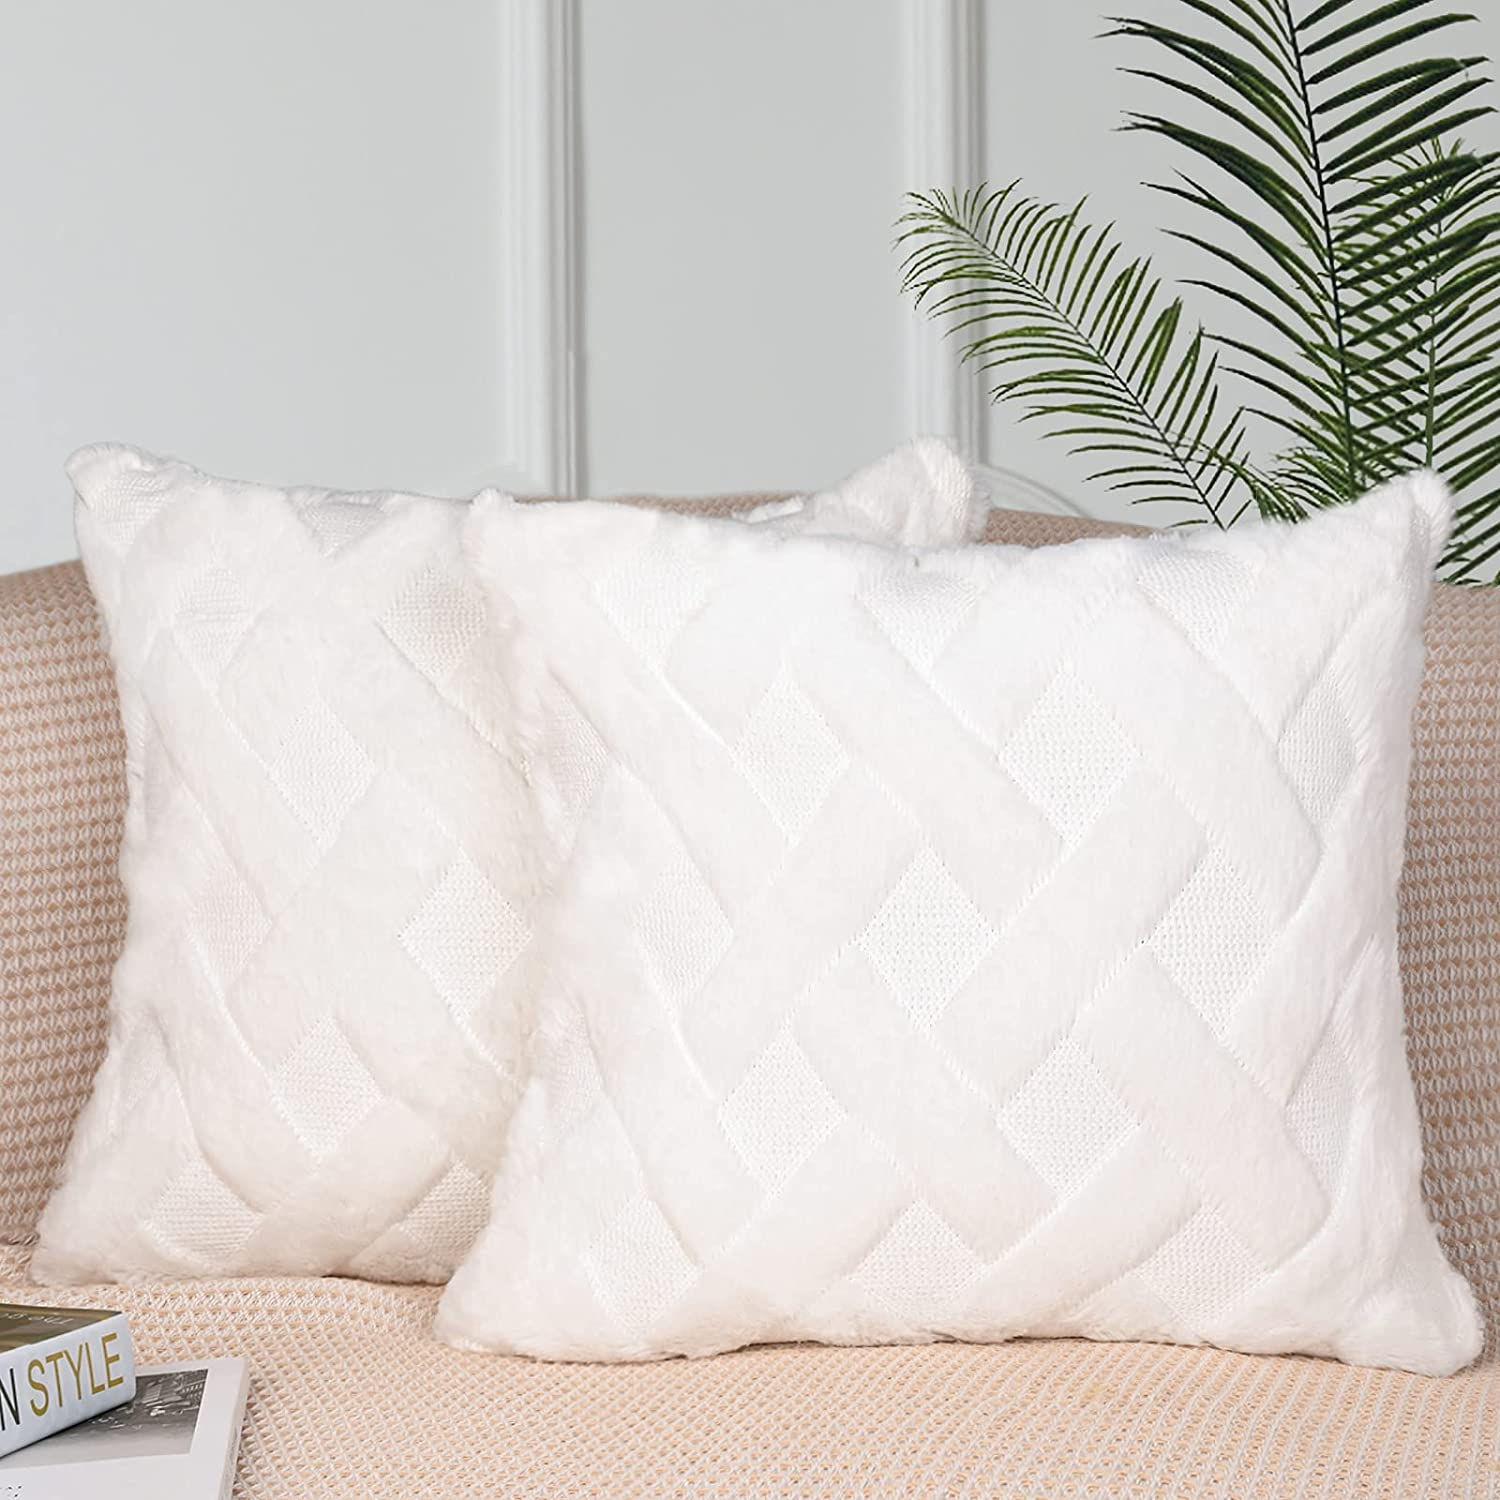 GRAREND Throw Pillow Covers 18x18 Decorative C Quality inspection Farmhouse Max 41% OFF